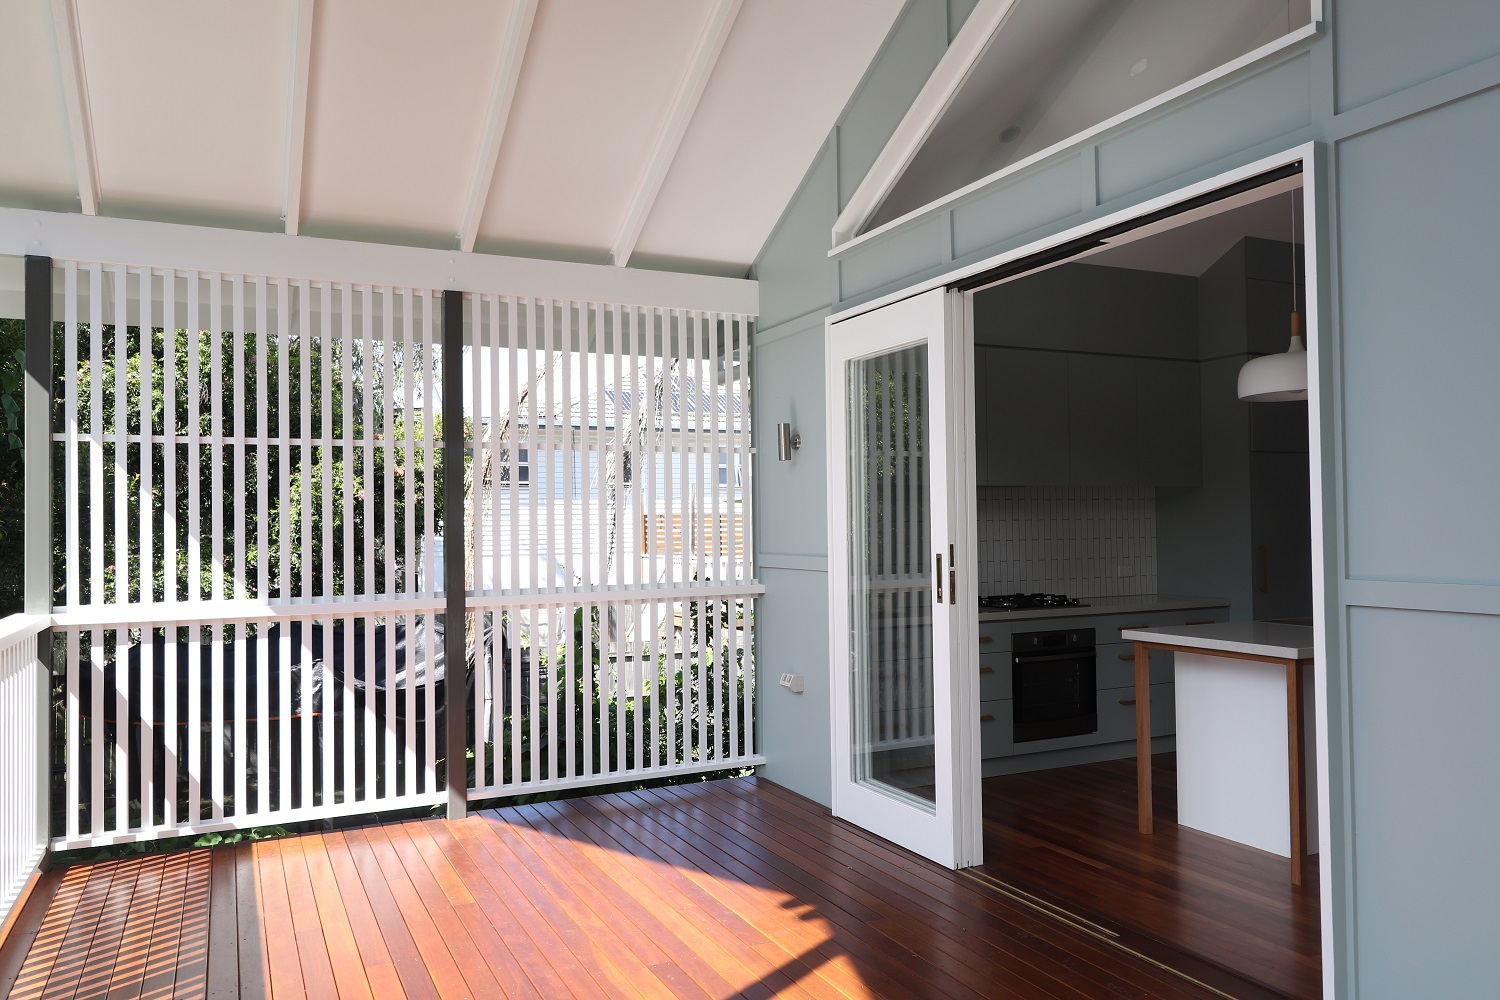 Home Extension Project Greenslopes Brisbane by Dirsell Constructions | We are Brisbane's Best Renovation & Extension Builder | 0432 897 328